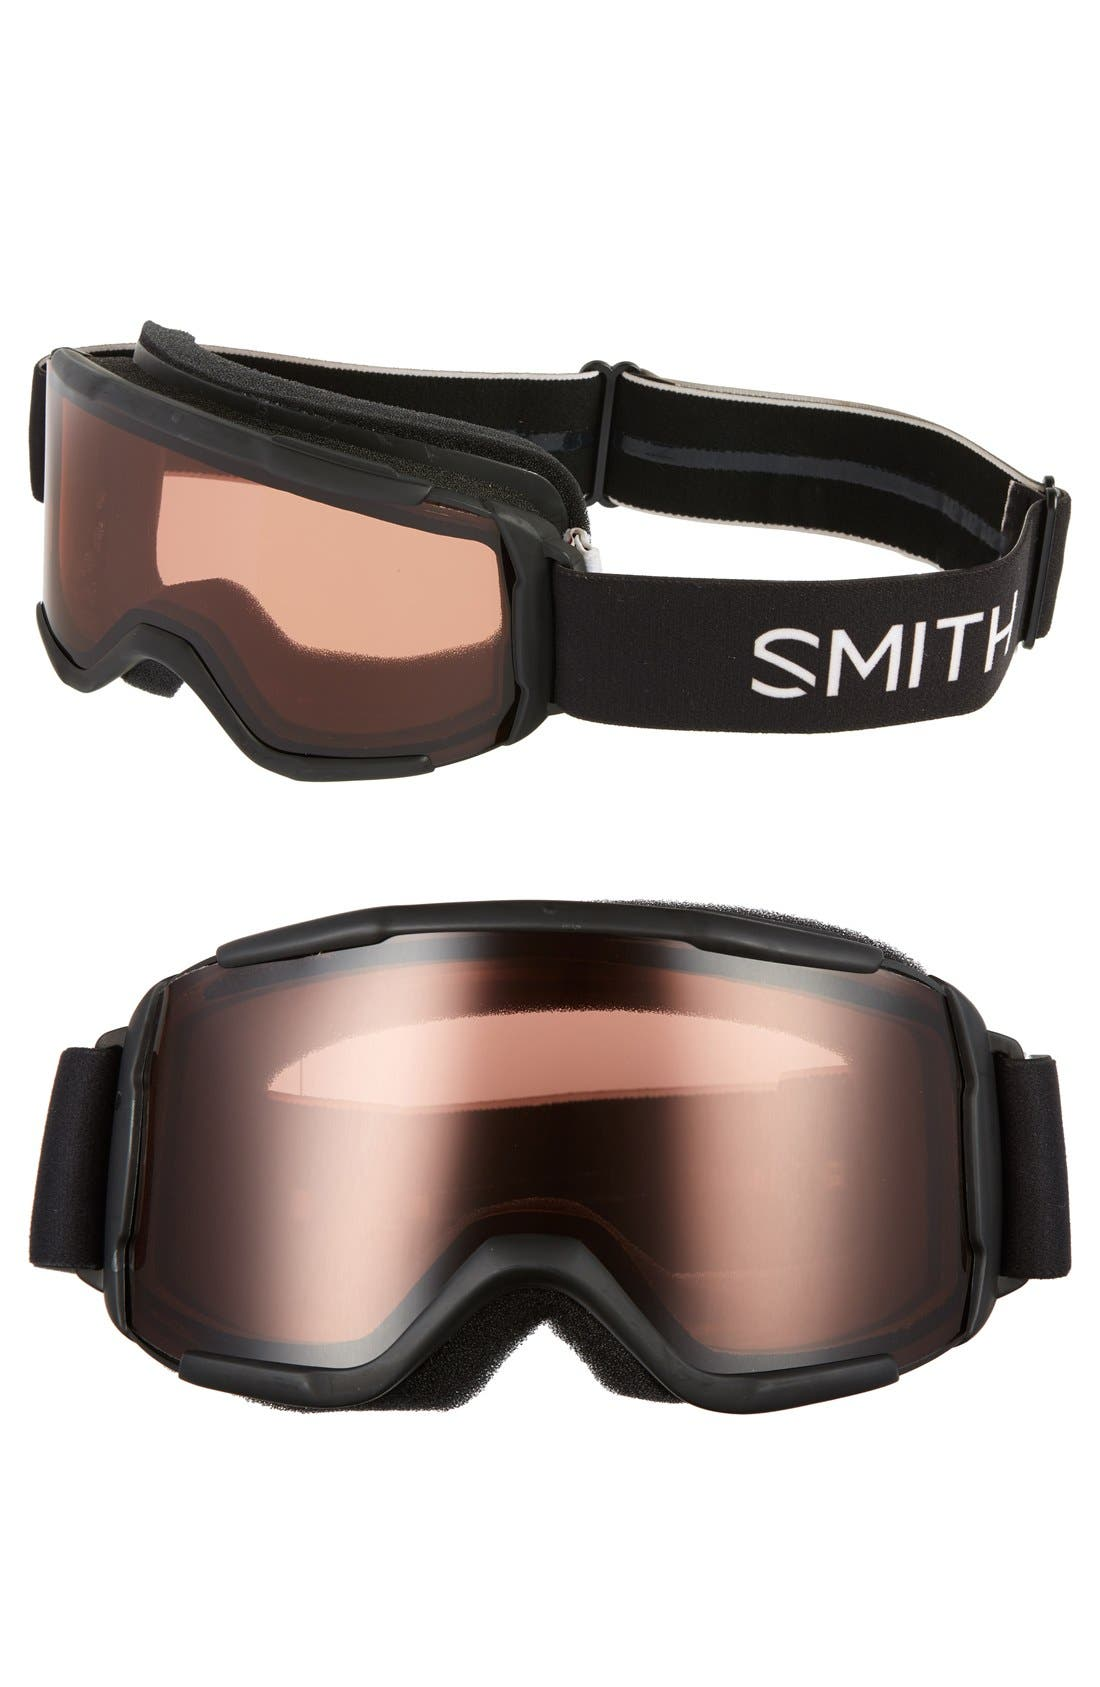 SMITH Daredevil Snow Goggles